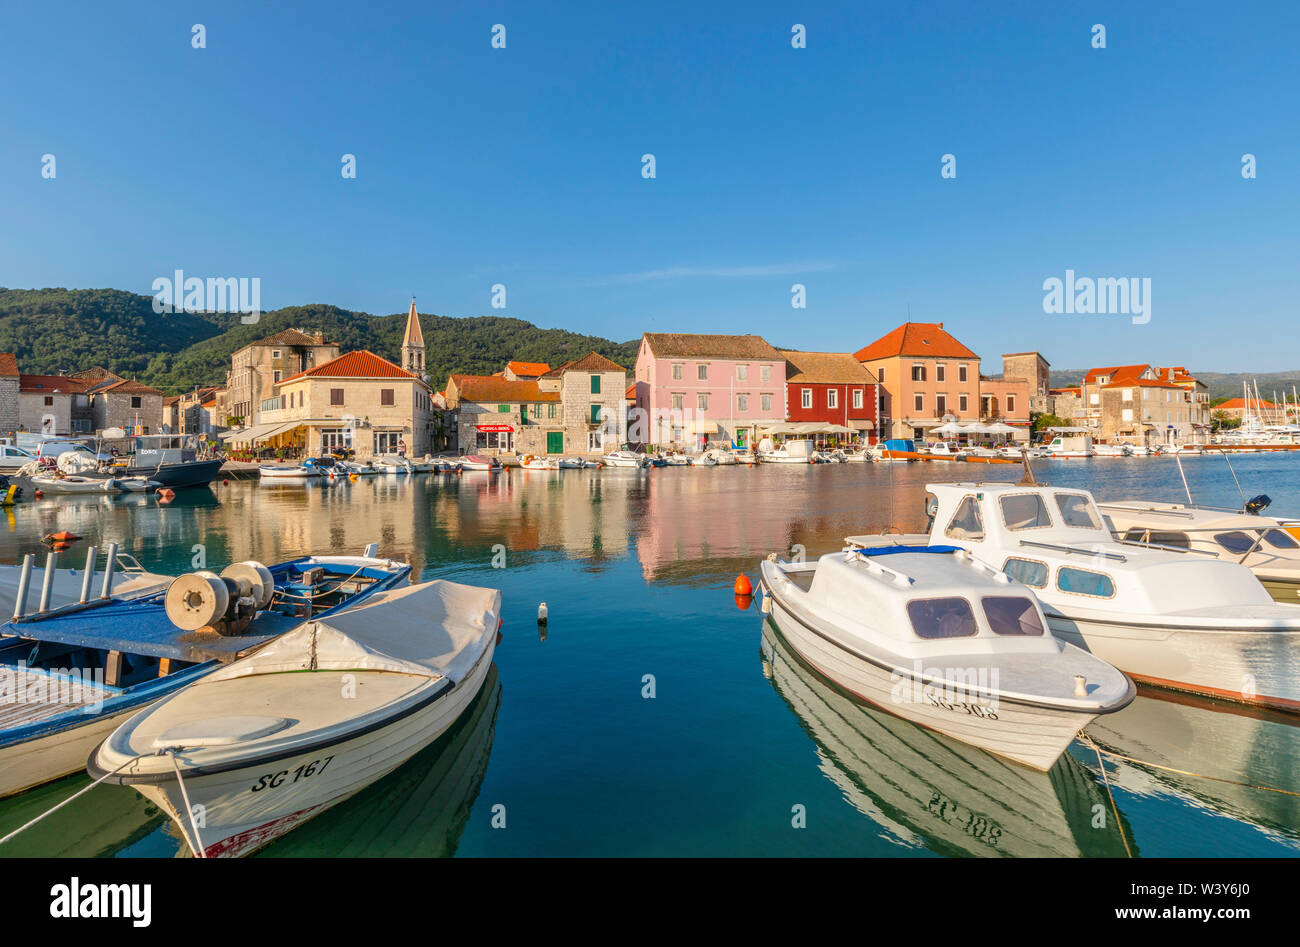 Stari Grad Harbour, Hvar, Dalmatian Coast, Croatia, Europe - Stock Image